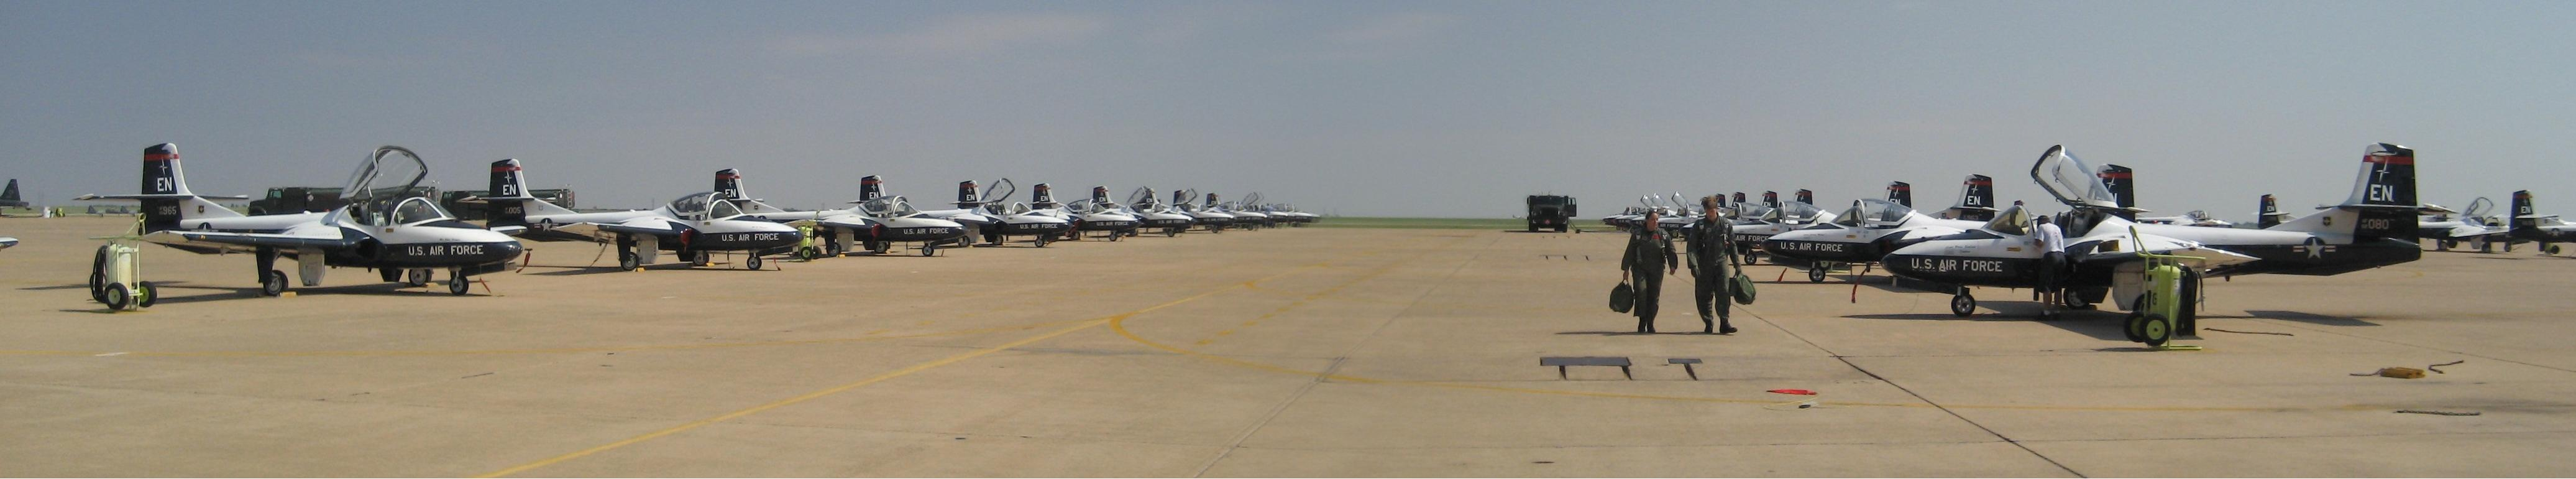 ENJJPT_T-37s_on_the_ramp